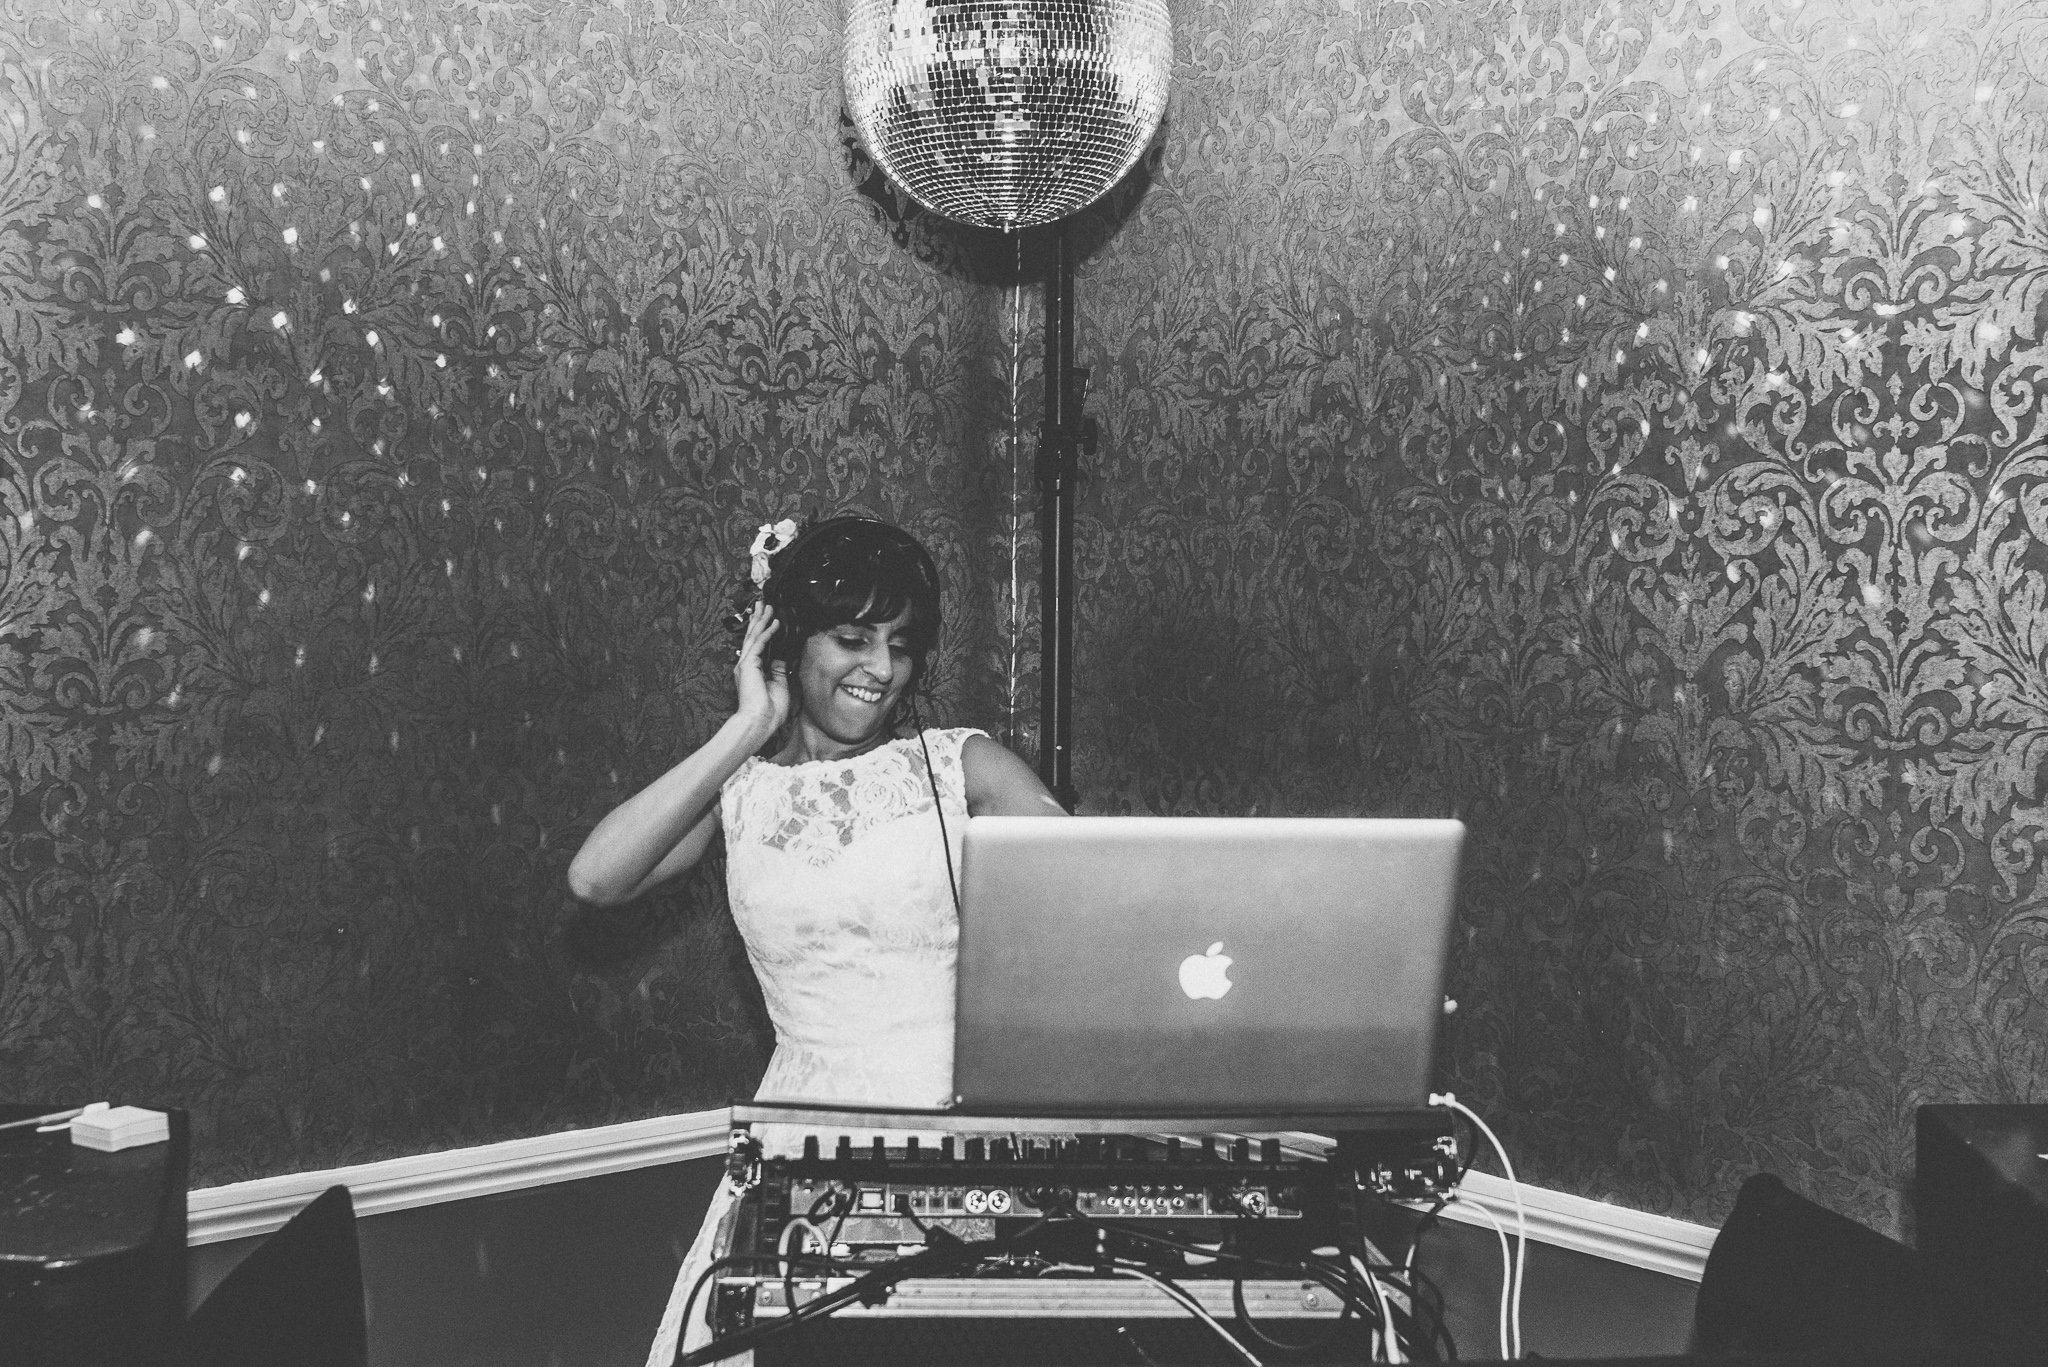 The bride plays DJ! Jasmin stands in the booth with headphones on, underneath a mirror ball.